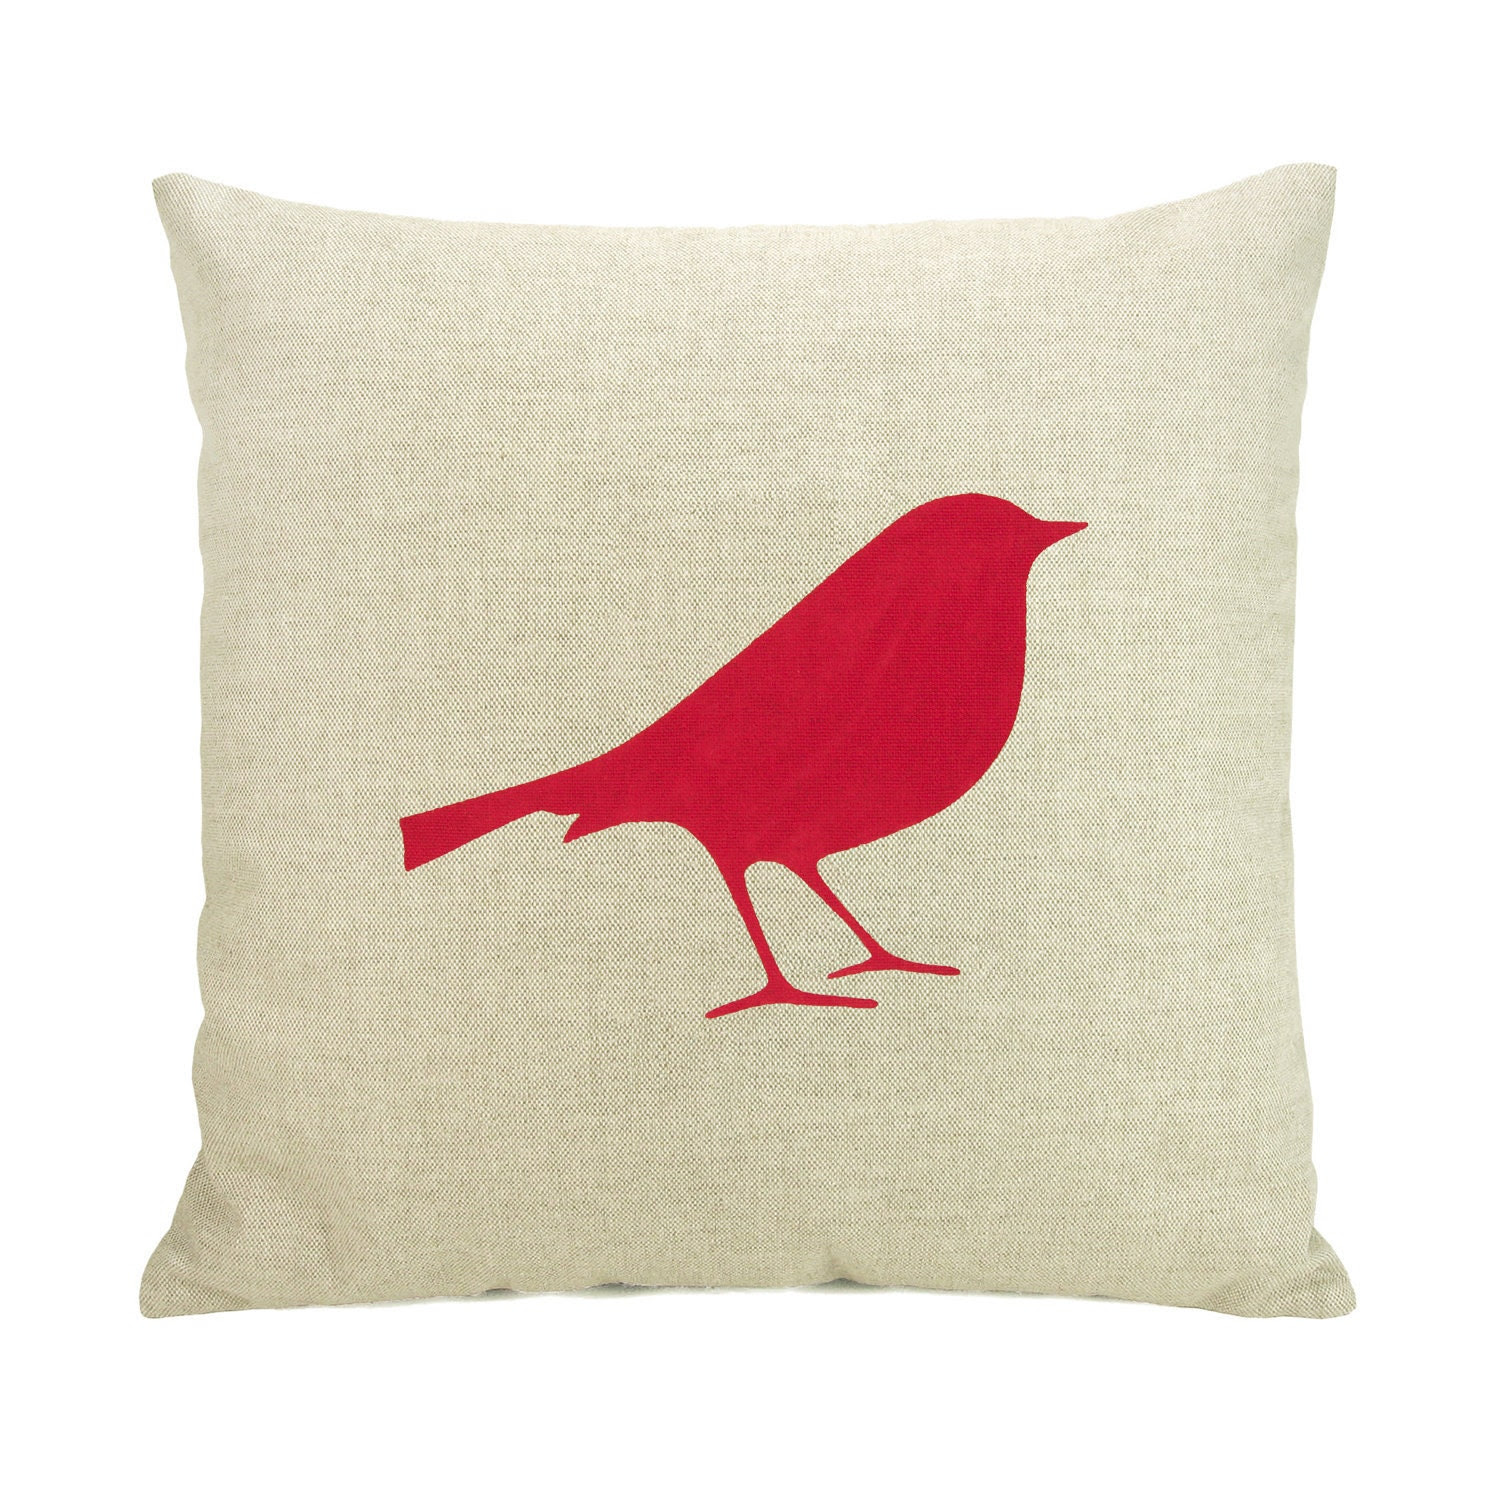 Bird pillow cover -  Red bird print on natural beige canvas throw pillow cover - 16x16 decorative pillow cover - ClassicByNature